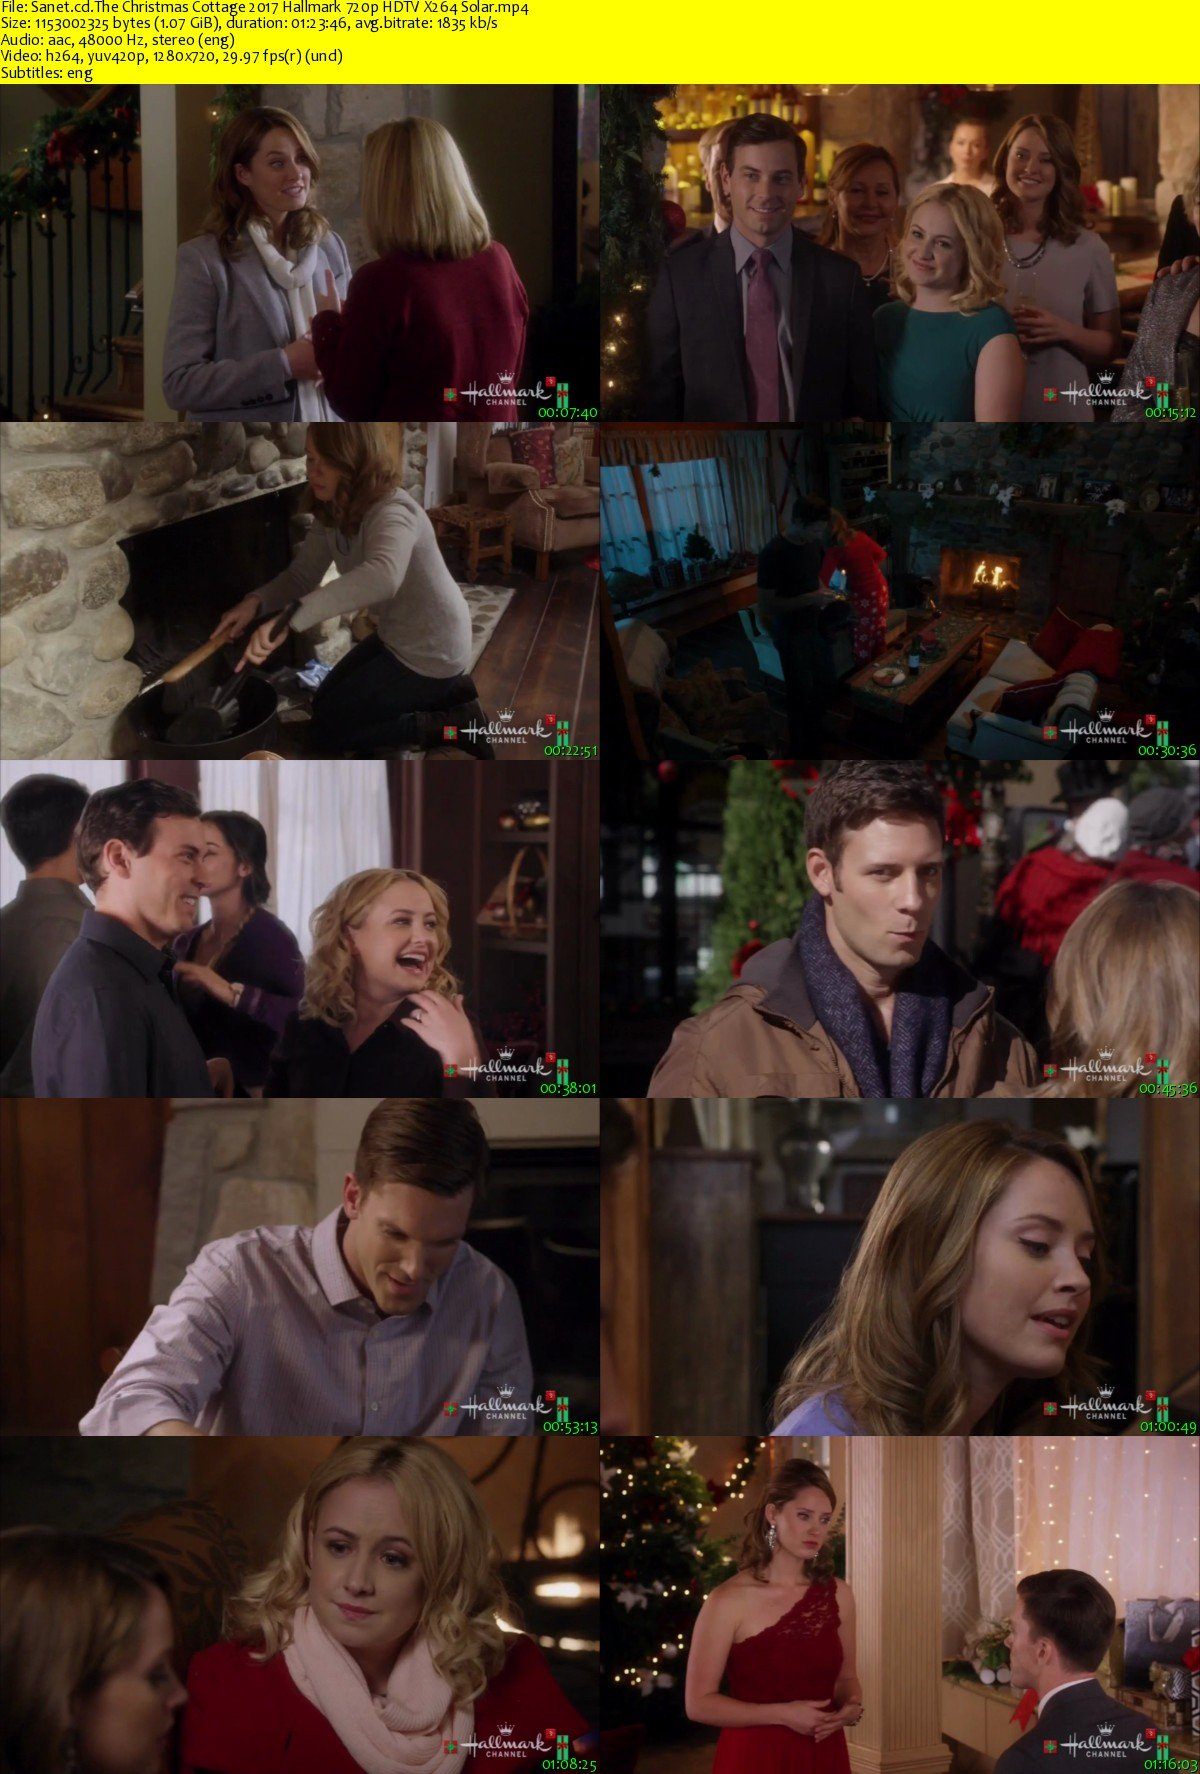 The Christmas Cottage.Download The Christmas Cottage 2017 Hallmark 720p Hdtv X264